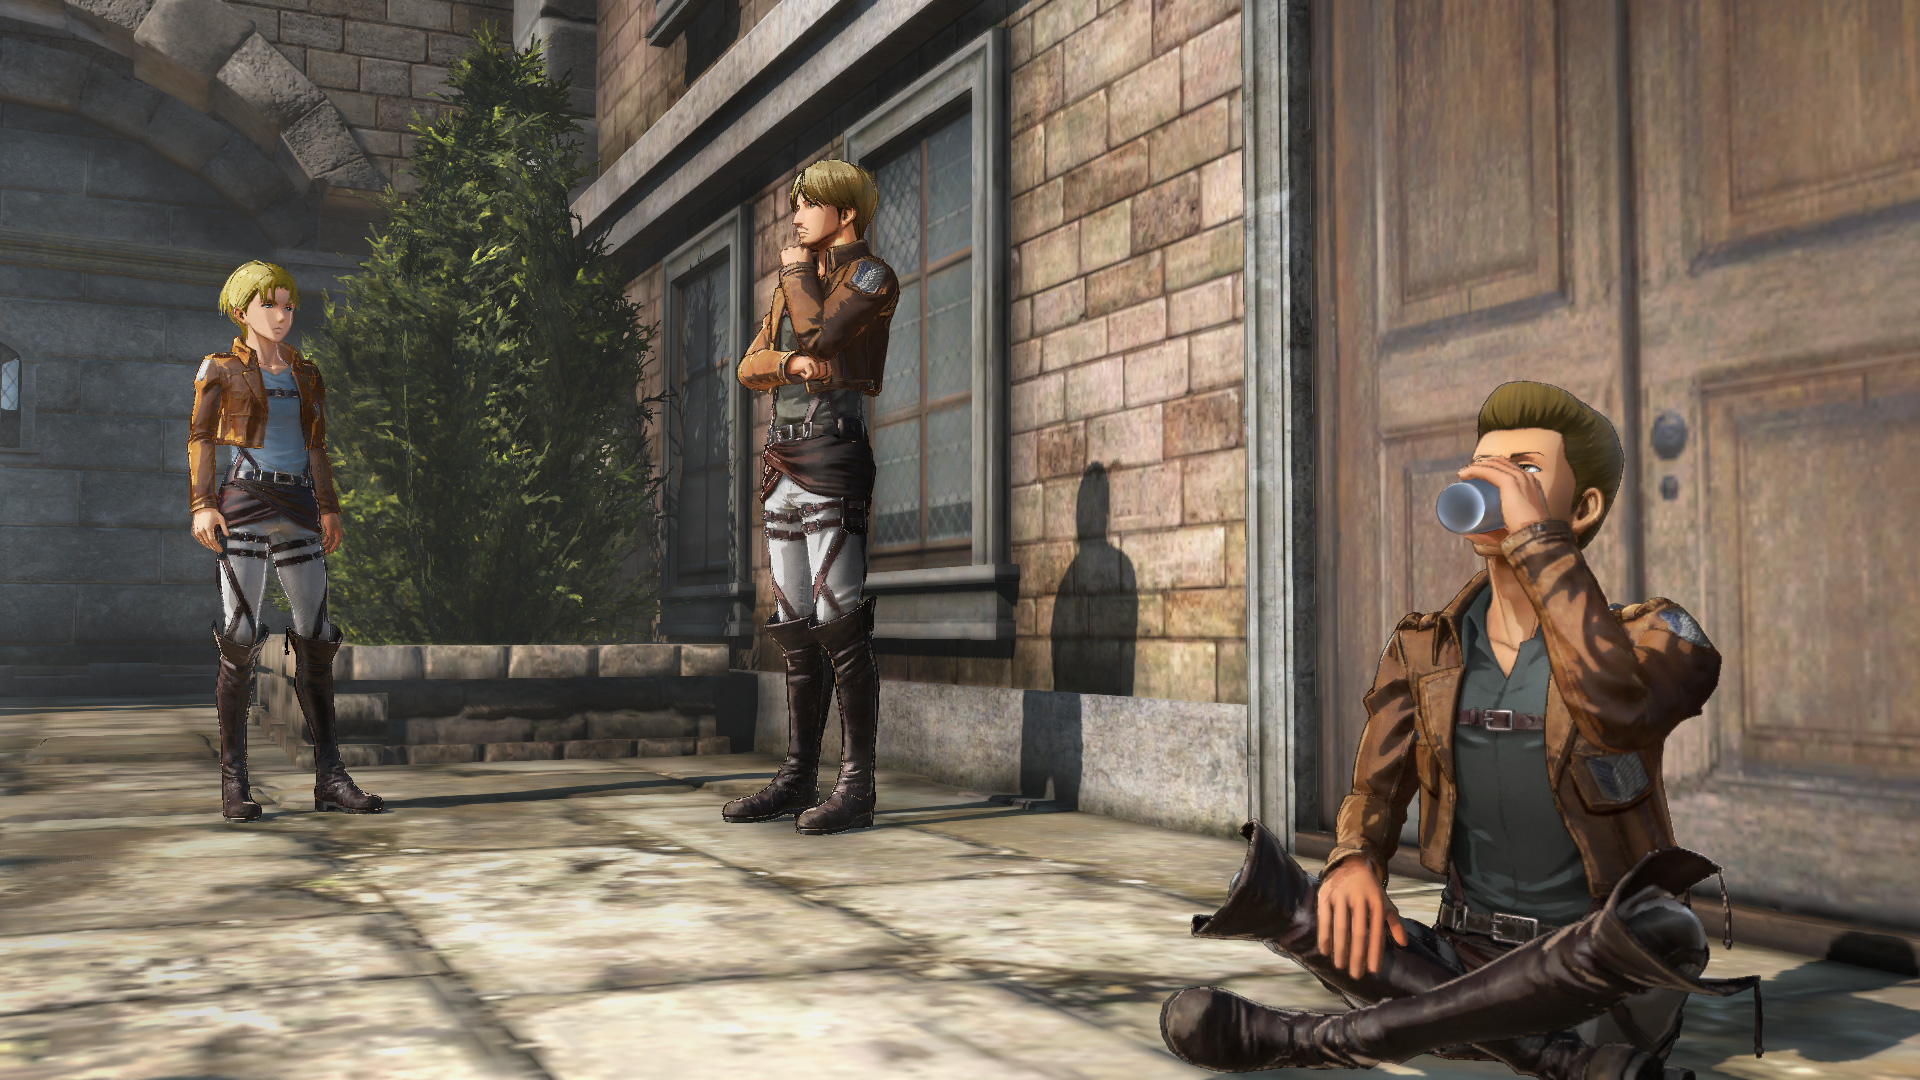 Attack On Titan Before The Fall Wallpaper Attack On Titan 2 Screenshots Introduce Characters And